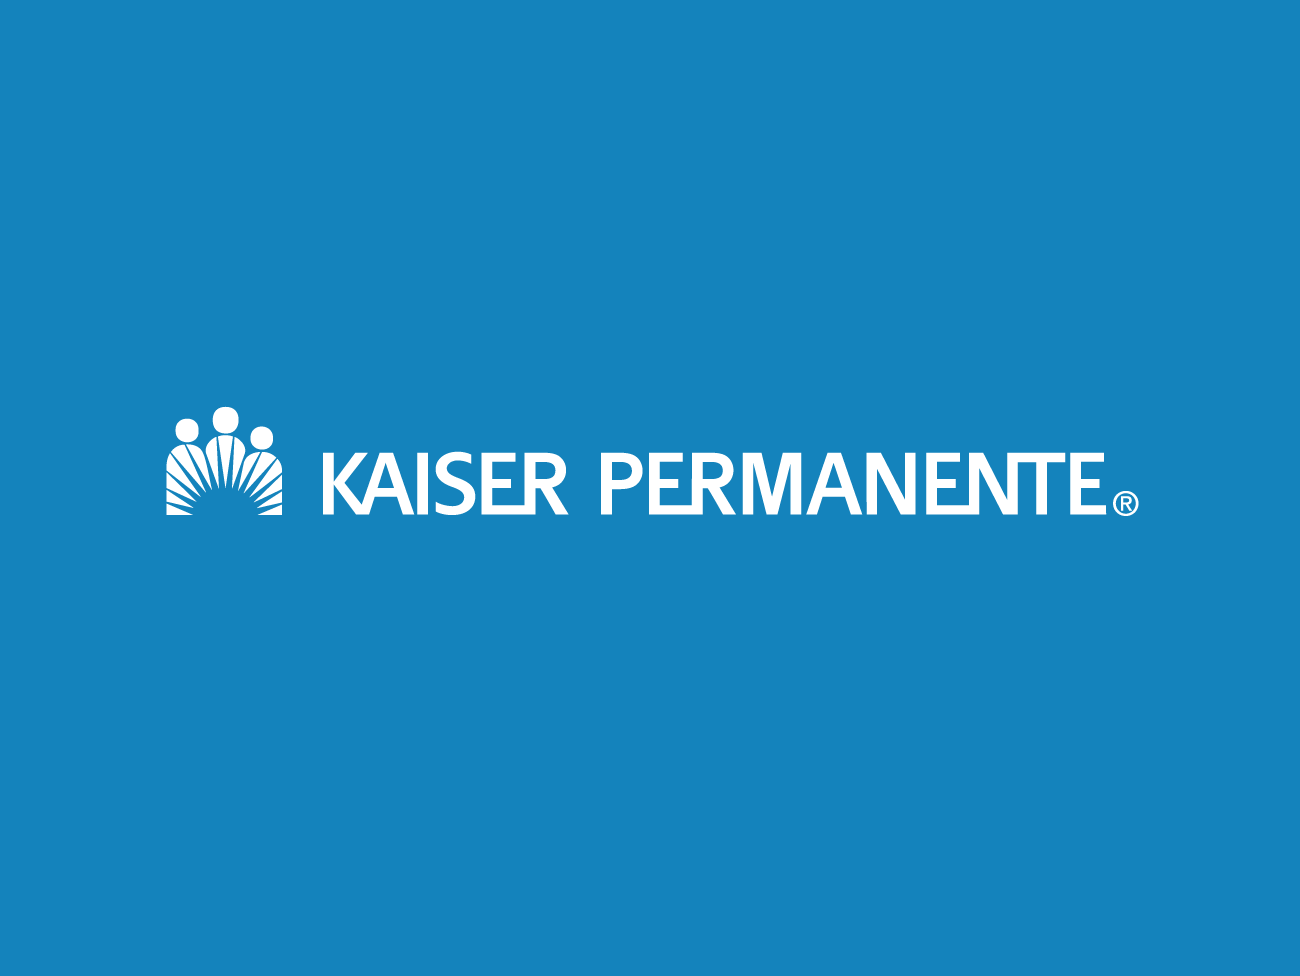 Kaiser Permanente logo on blue background